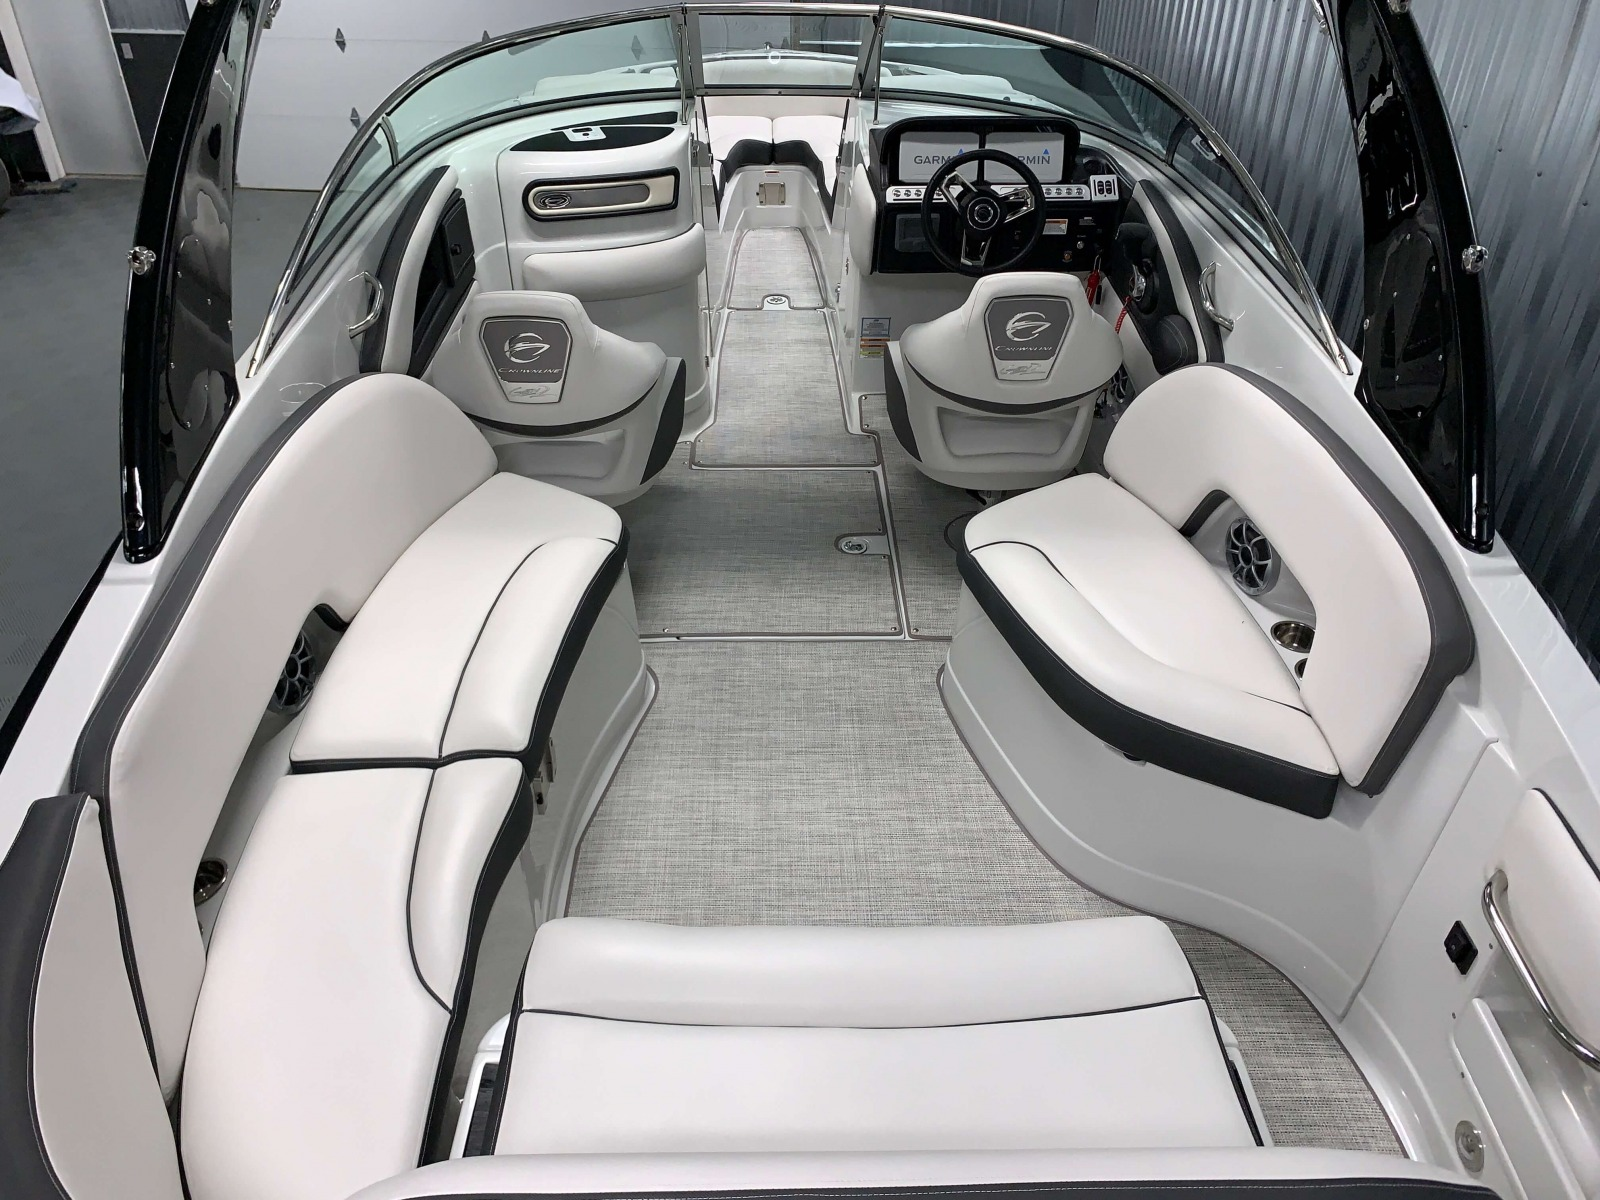 Interior Cockpit Layout of the 2021 Crownline 280 SS Bowrider Boat